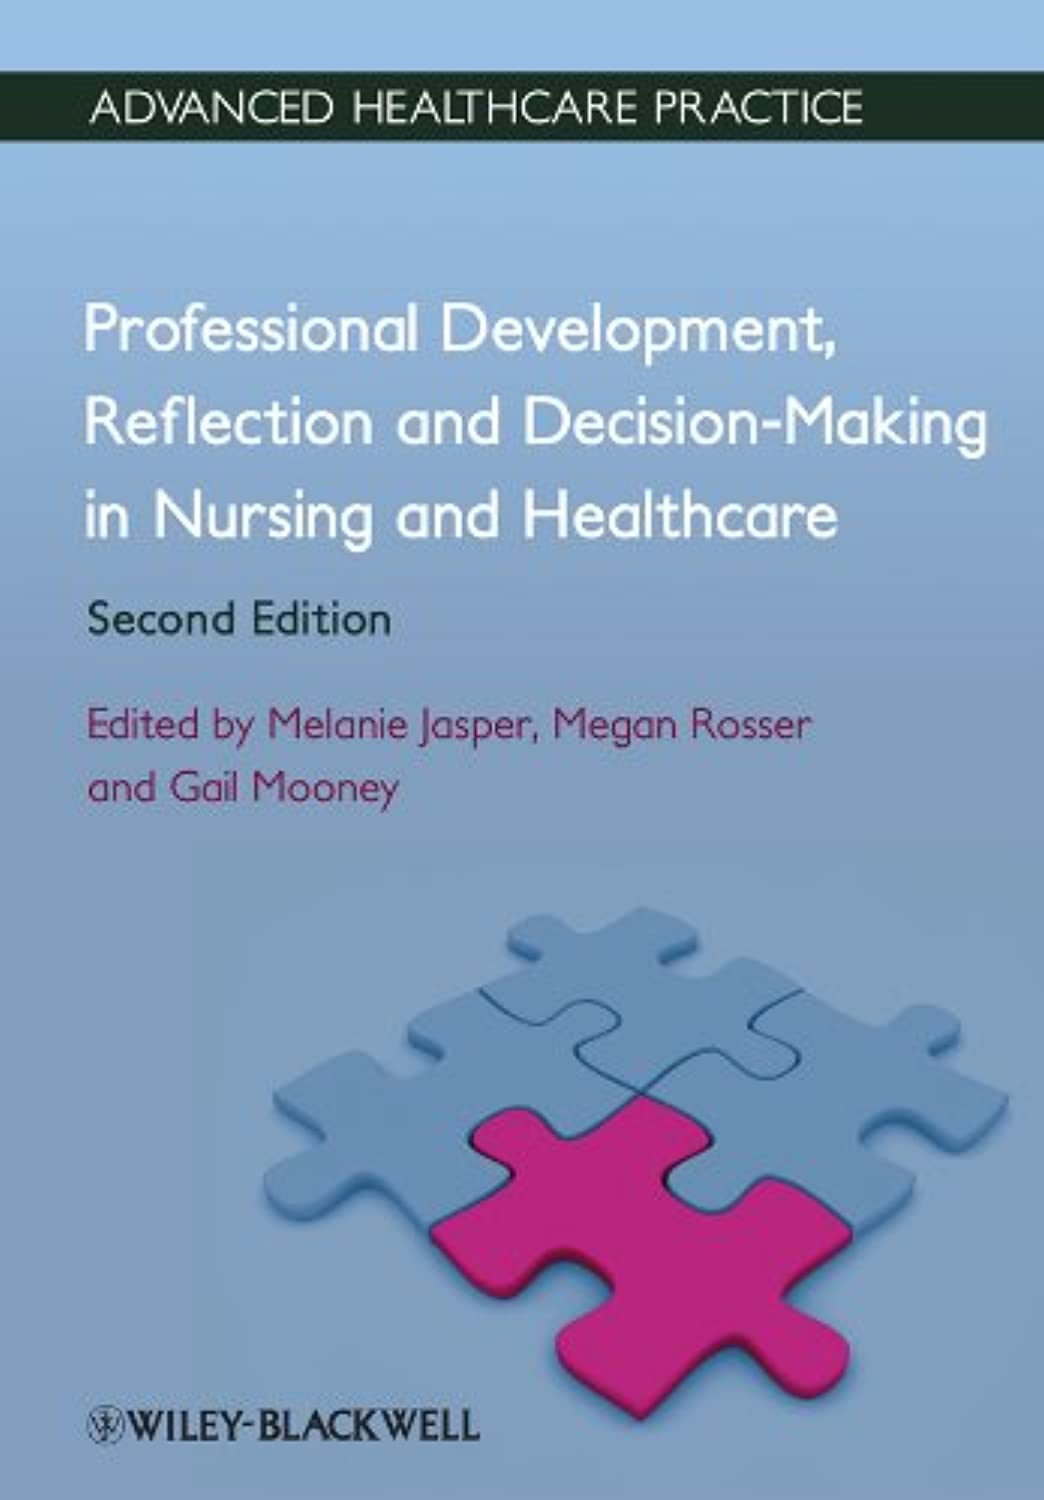 Professional Development, Reflection and Decision-Making in Nursing and Healthcare (Advanced Healthcare Practice) (English Edition)